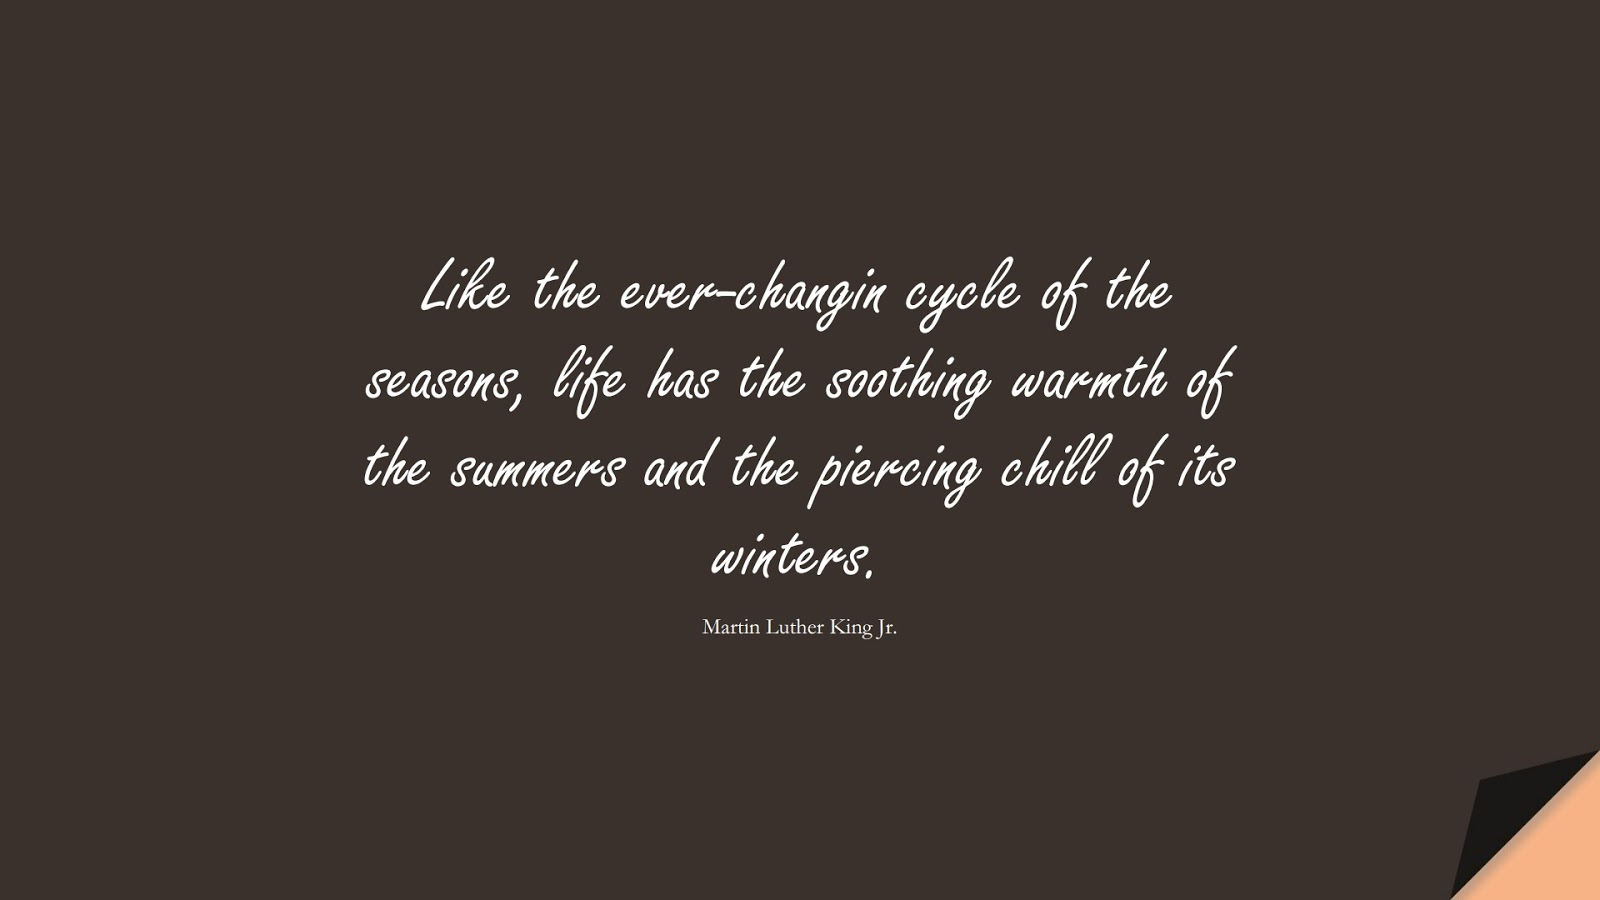 Like the ever-changin cycle of the seasons, life has the soothing warmth of the summers and the piercing chill of its winters. (Martin Luther King Jr.);  #MartinLutherKingJrQuotes